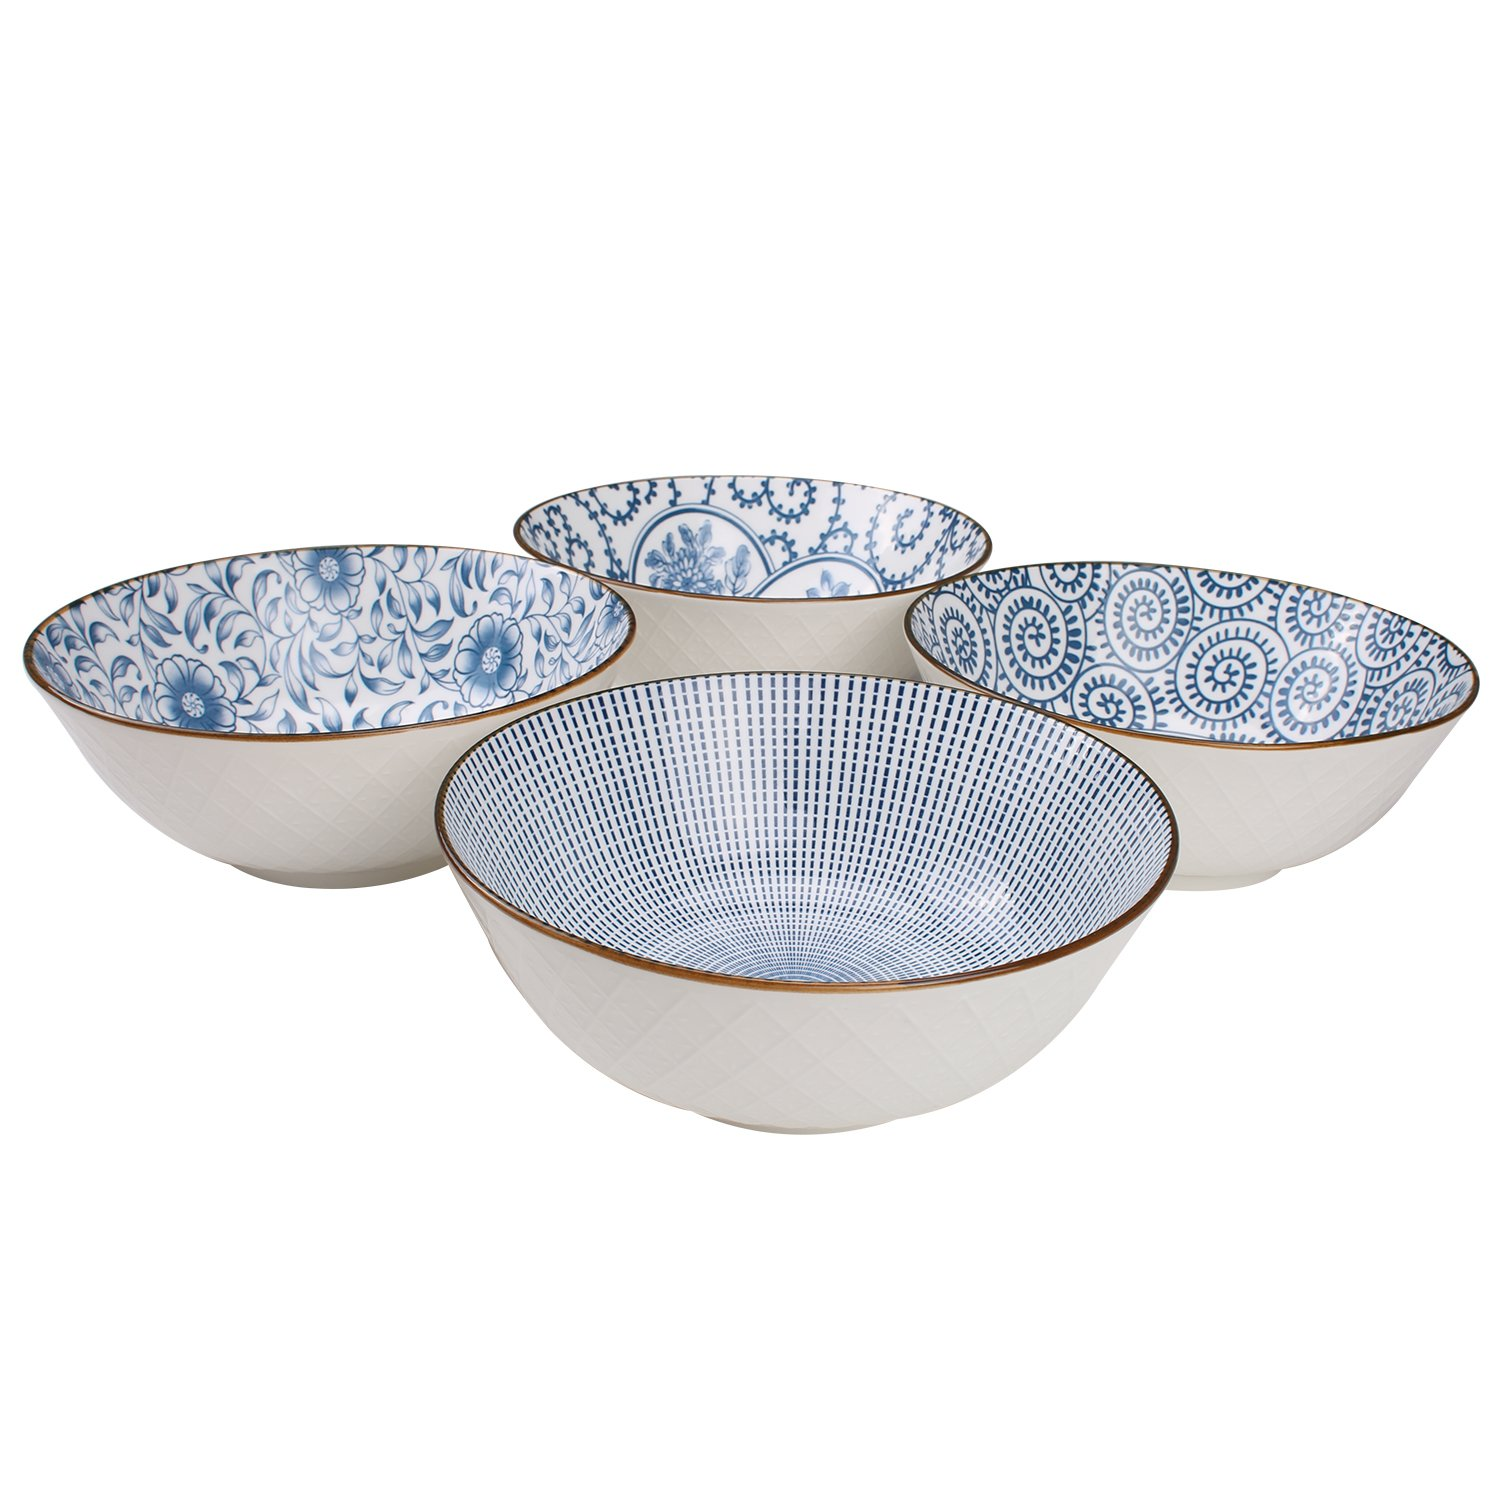 40-Ounce Porcelain Soup,Salad,Pasta Serving Bowls, Assorted Floral Patterns, Stackable Deep Bowl Set of 4 by YL